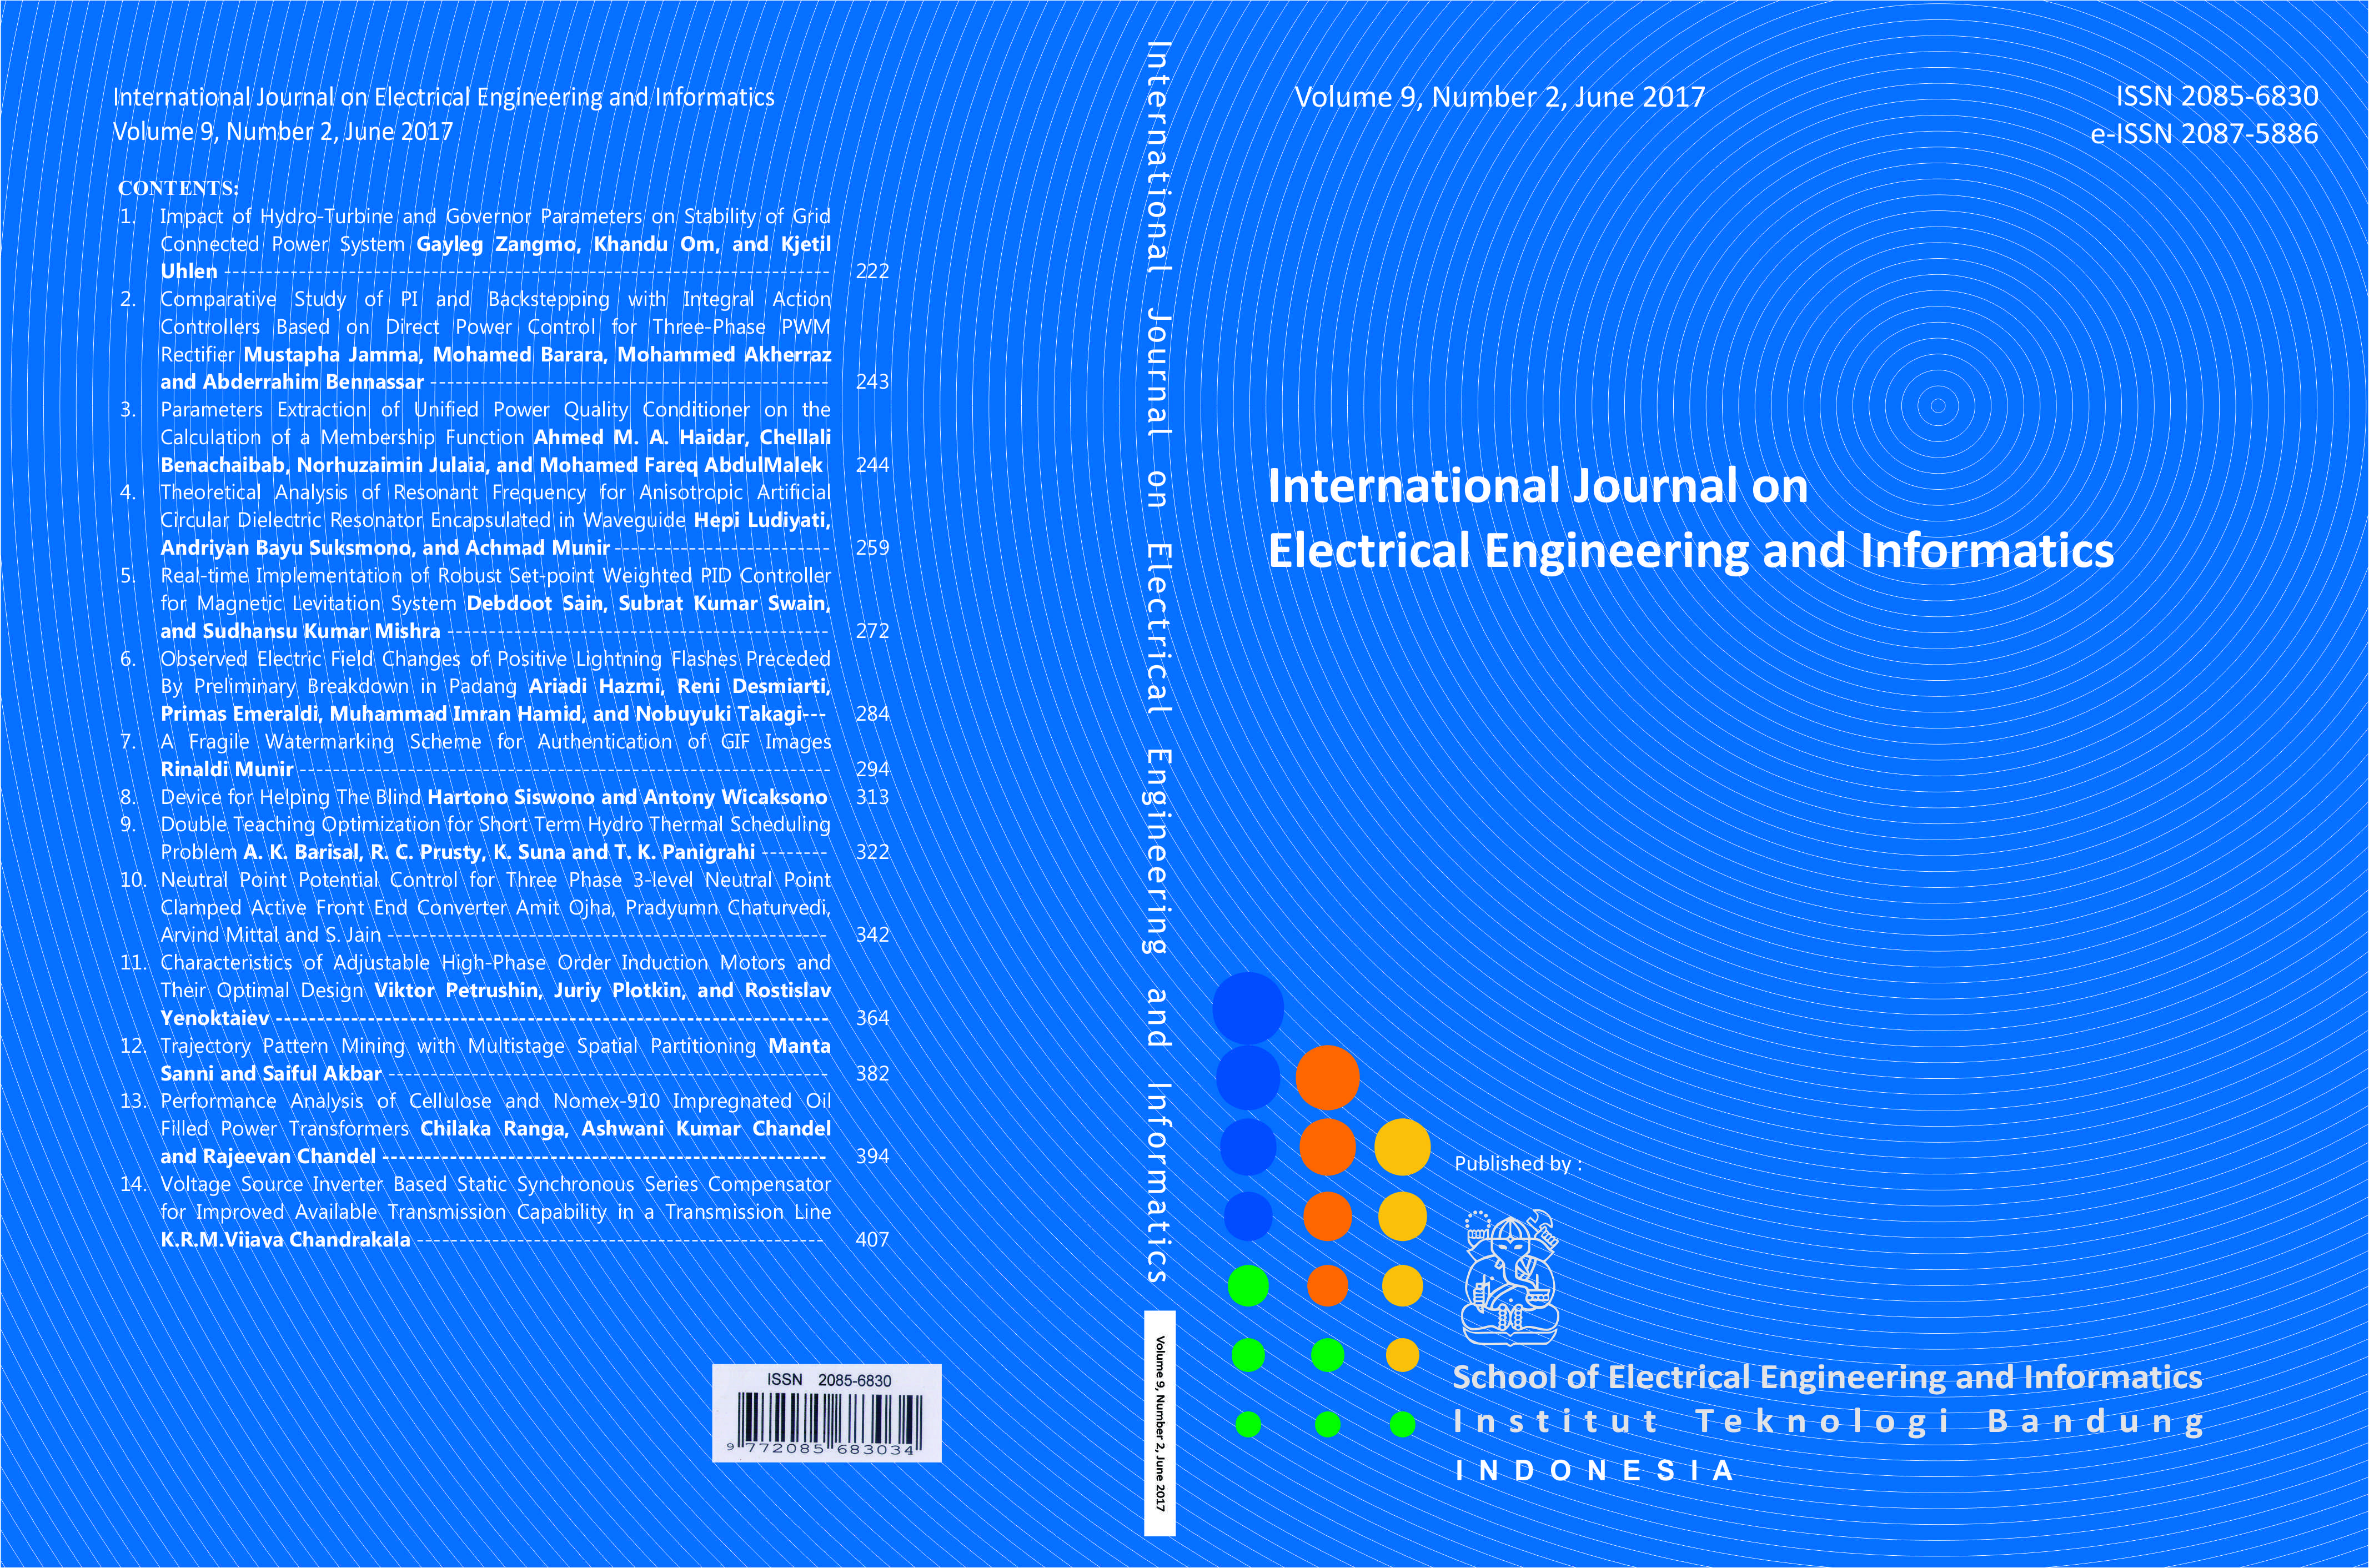 Journal cover Vol. 9 No. 2, June Year 2017